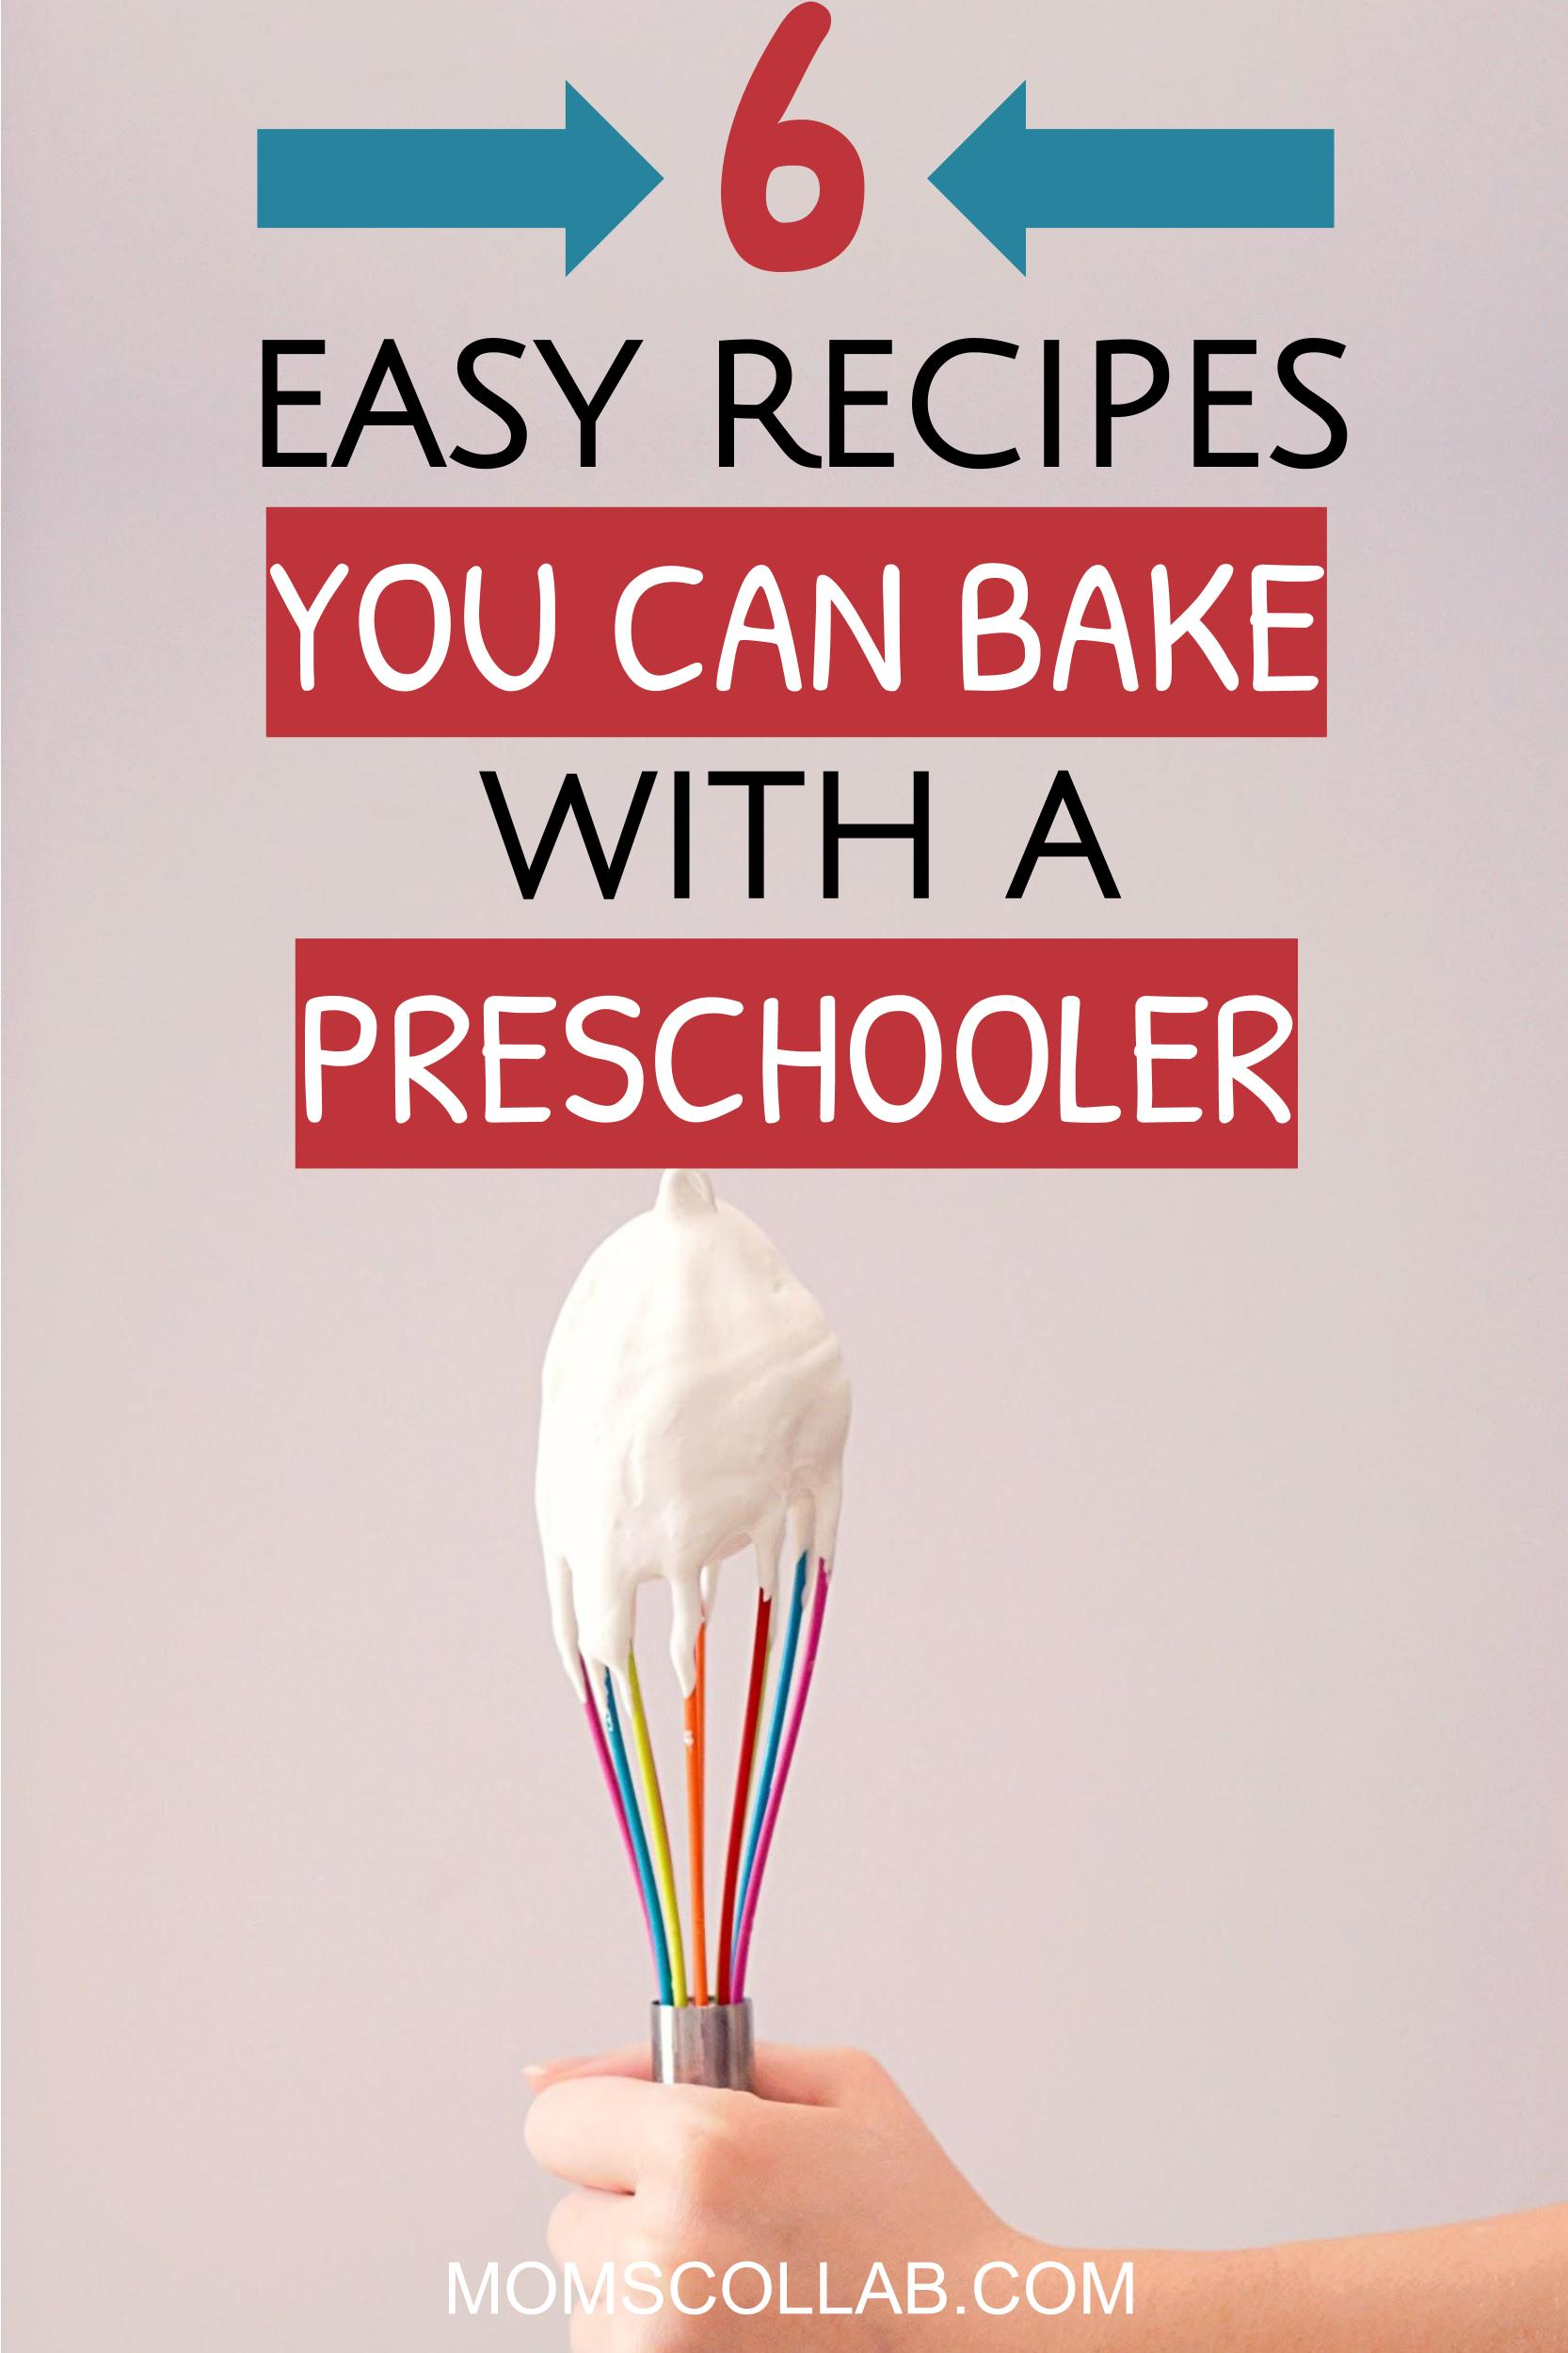 easy recipes to bake with a preeschooler